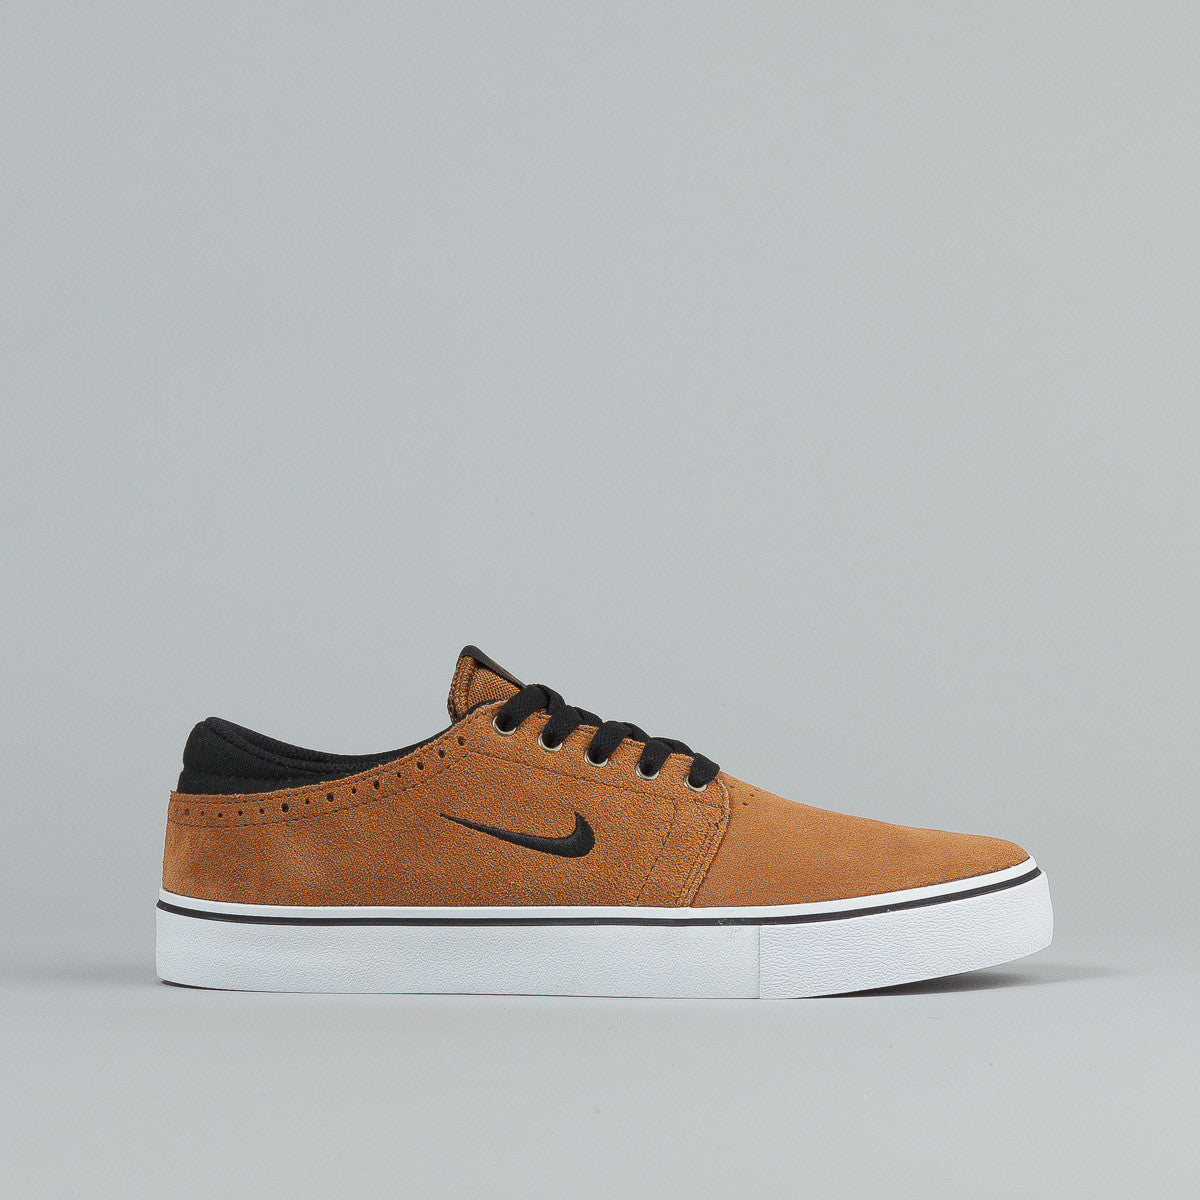 Nike Sb Team Edition Ale Brown / Black